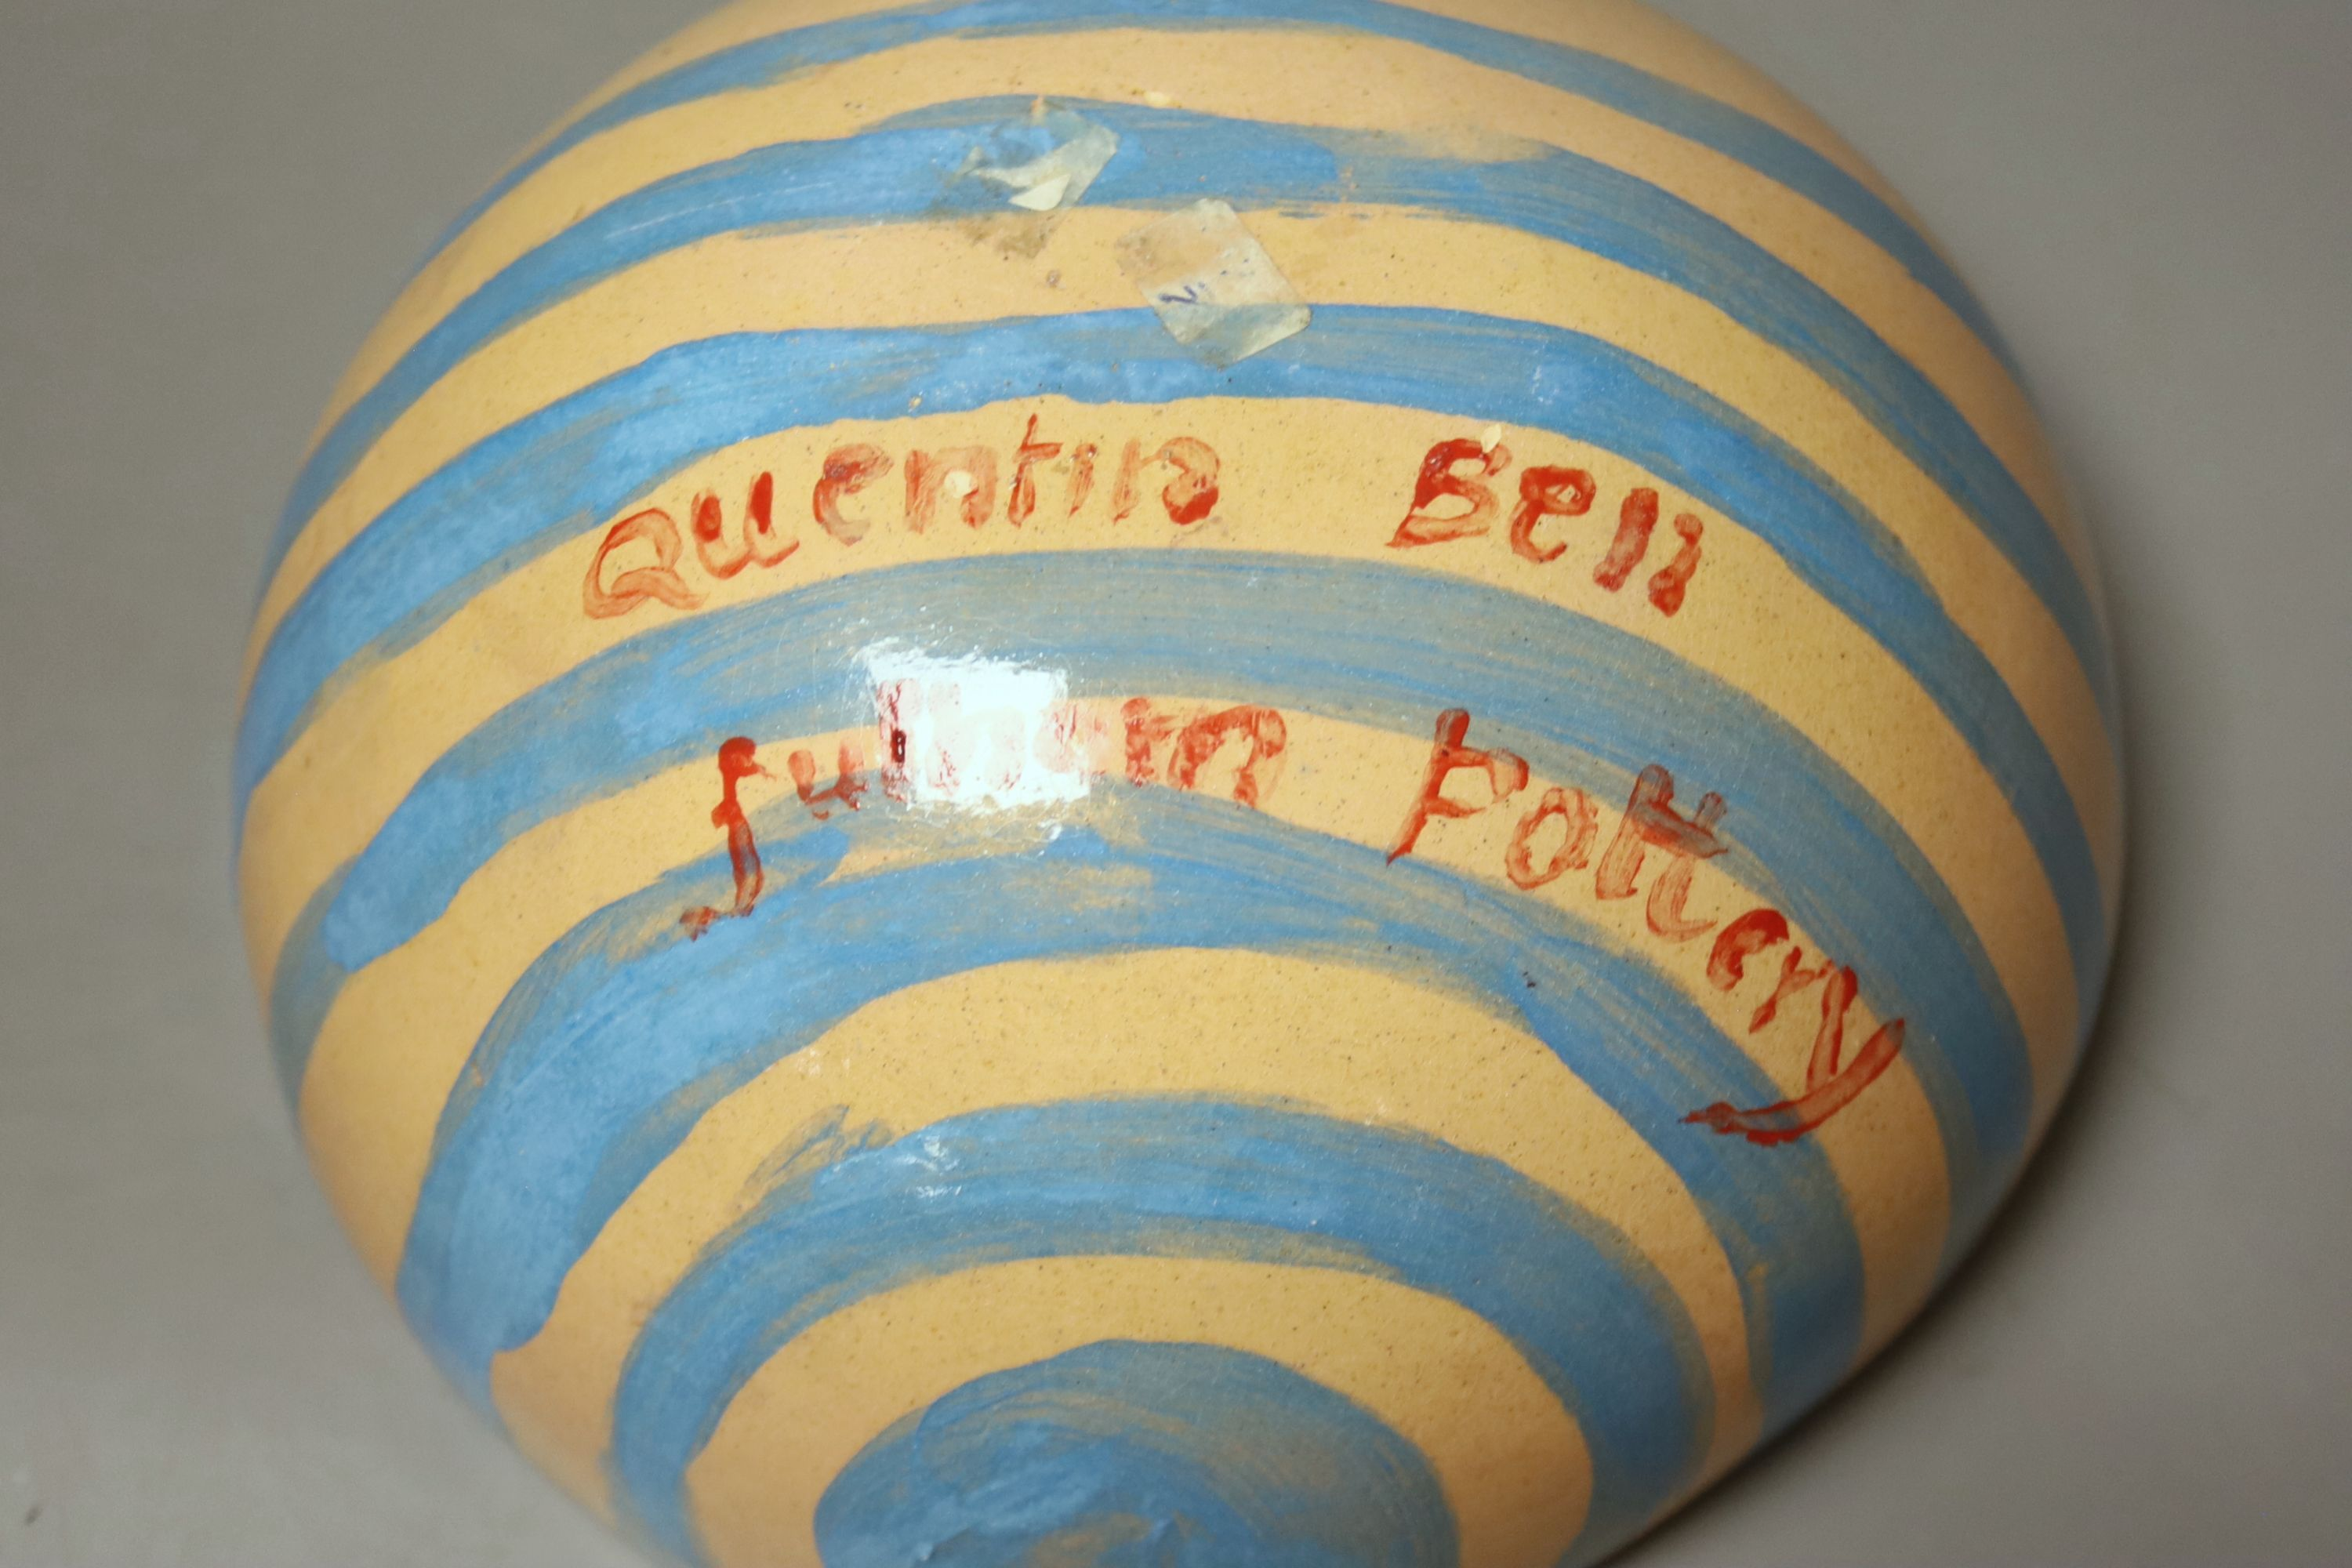 Quentin Bell. A hand painted earthenware bowl, 10cm high - Image 3 of 3